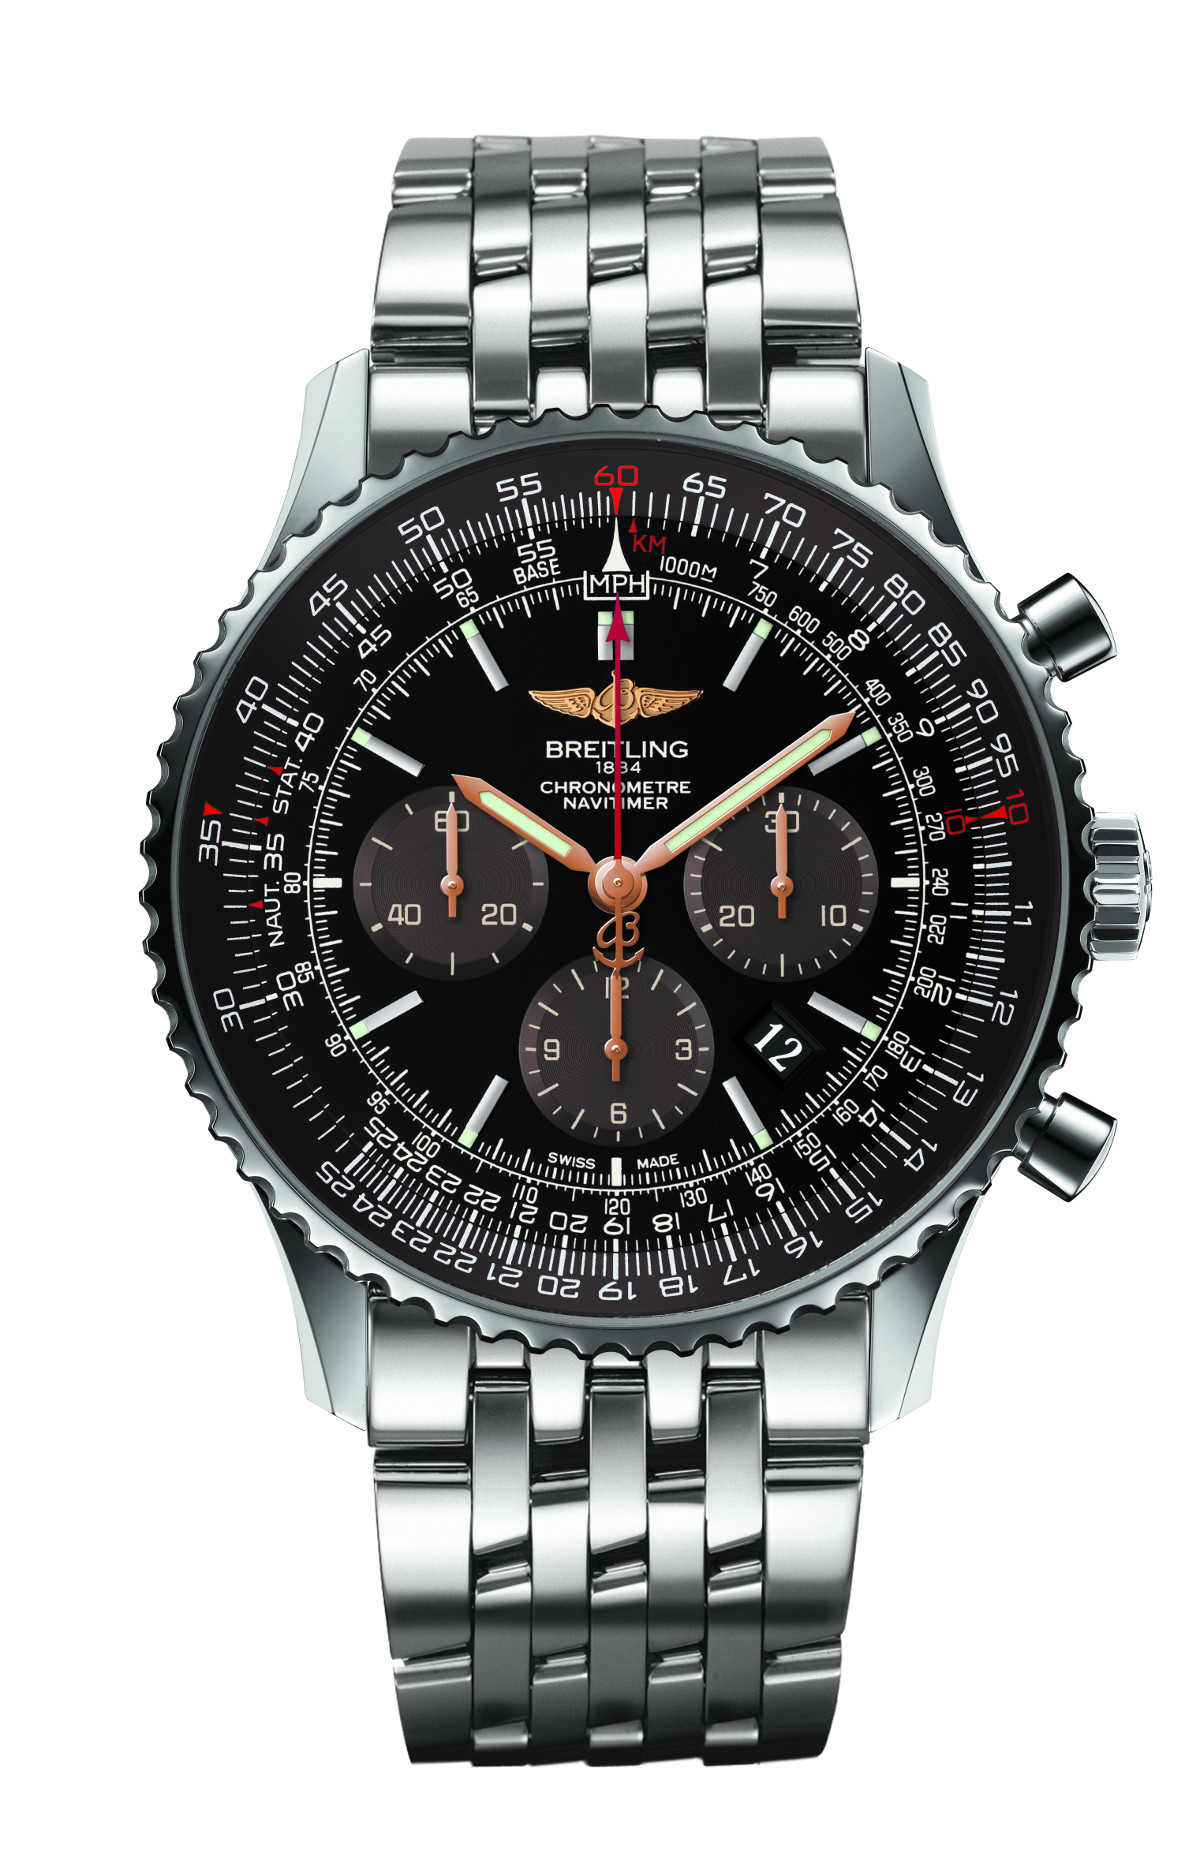 Nowy Breitling Navitimer 01 (46 mm) Limited Edition | timeandwatches.pl